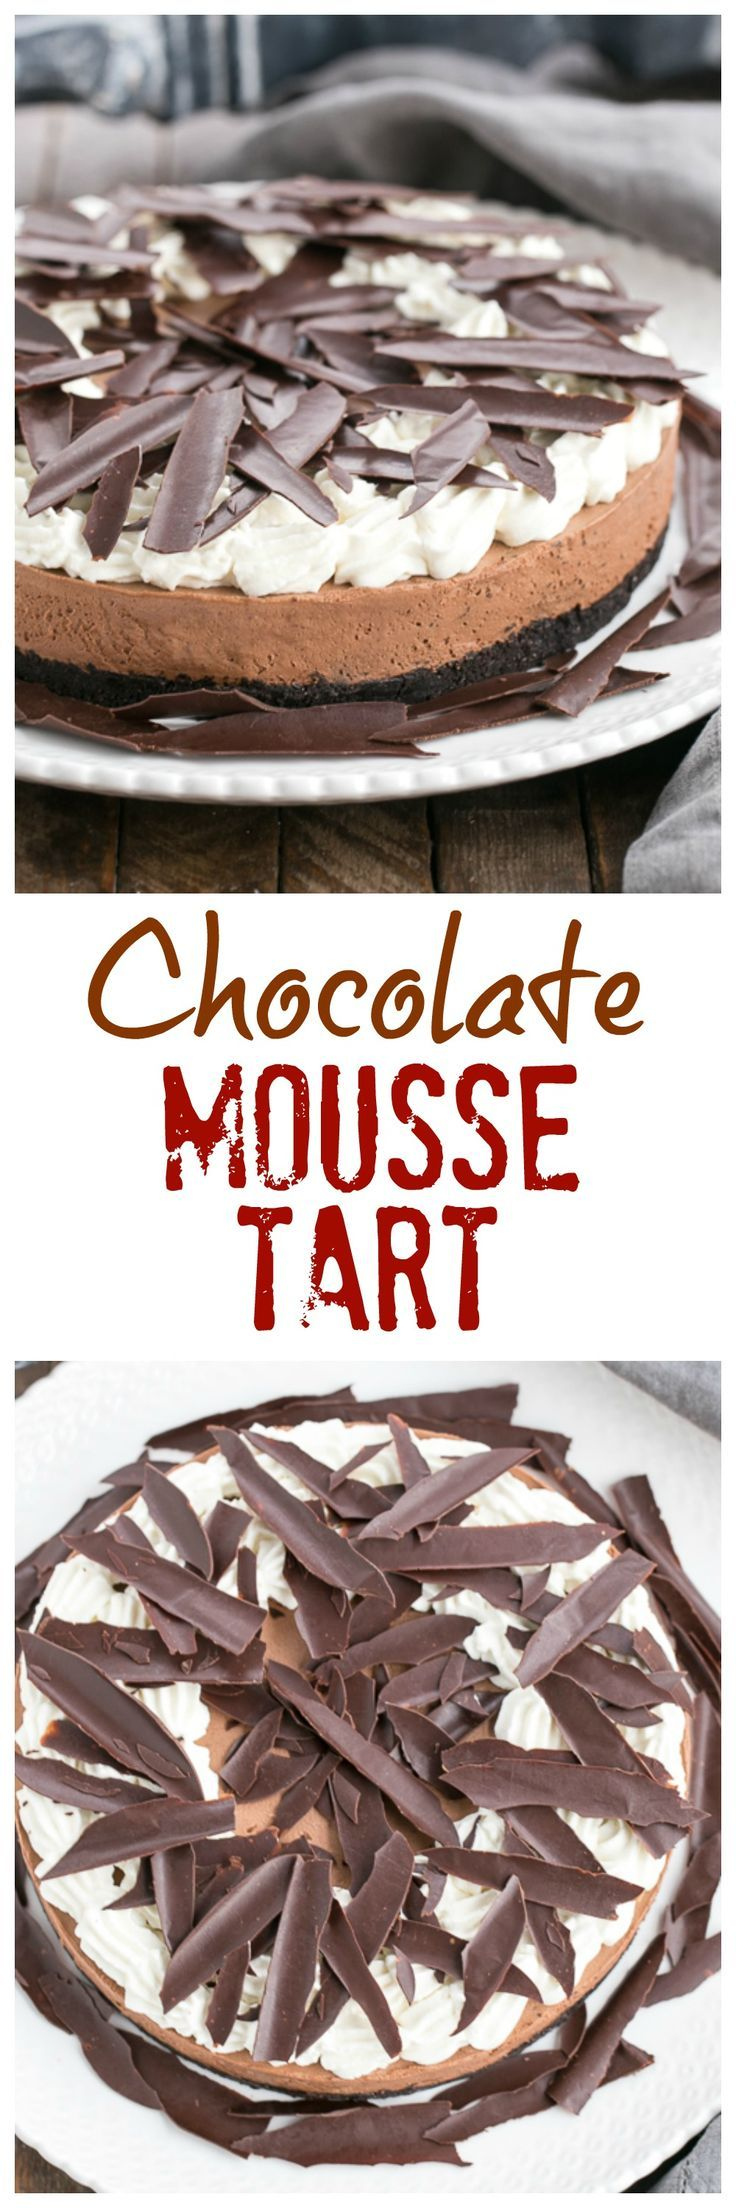 13070 best images about !BEST Chocolate Recipes! on Pinterest ...